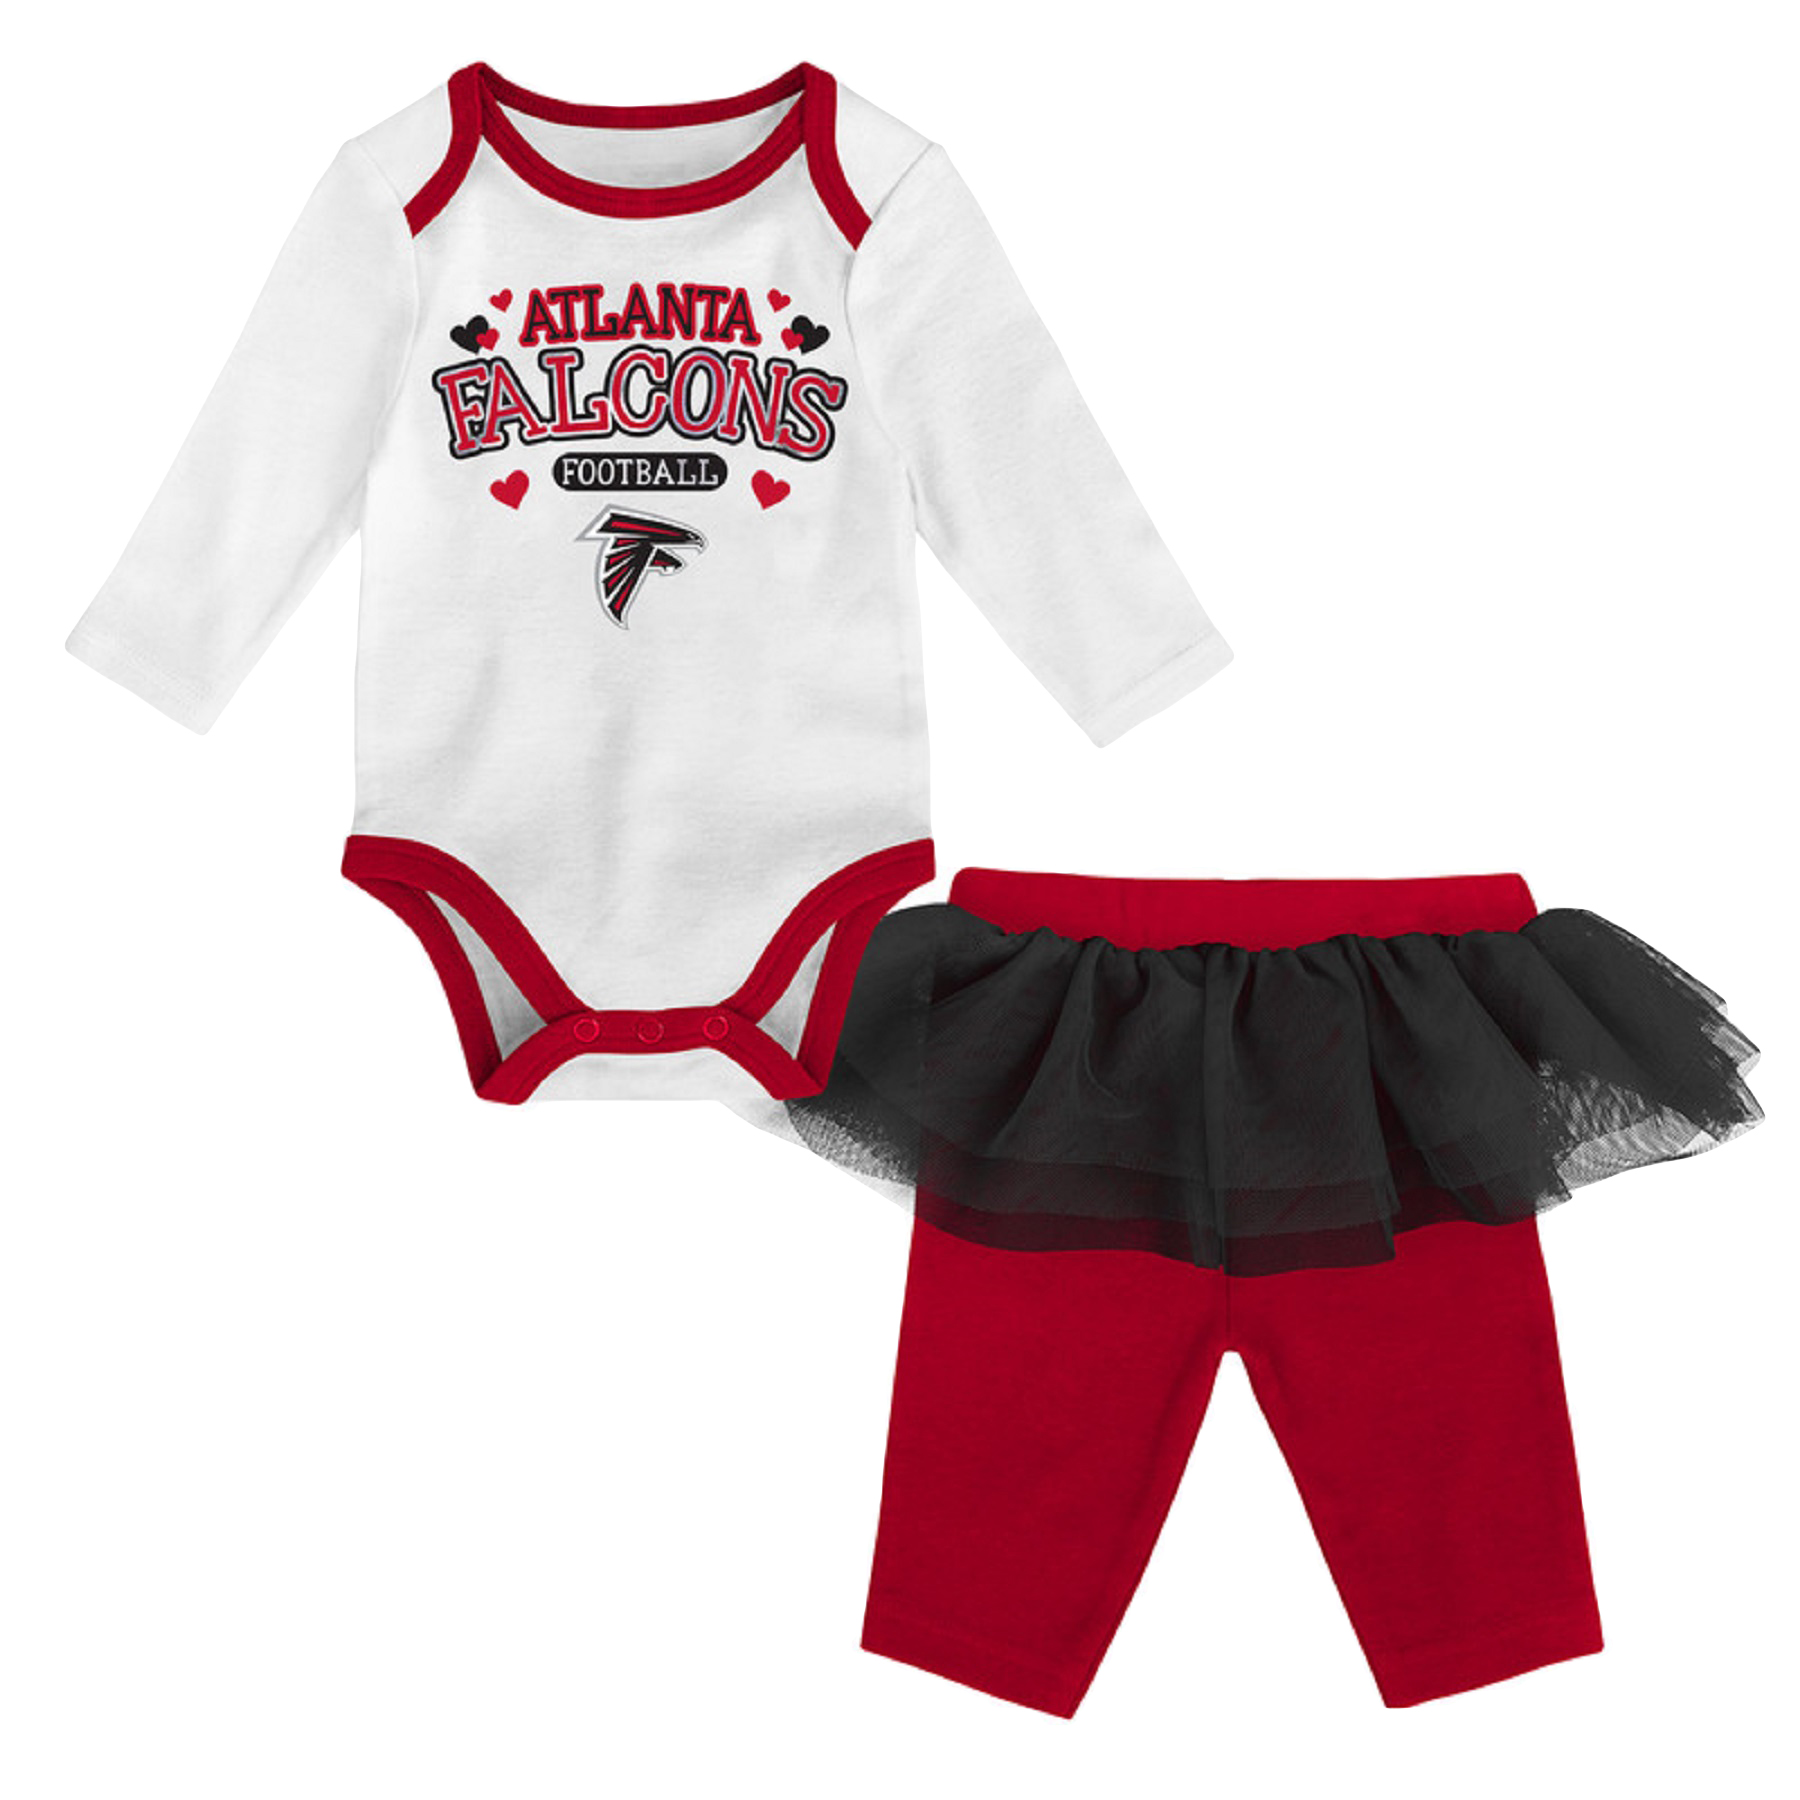 Girls Newborn & Infant White/Red Atlanta Falcons Tulle Long Sleeve Bodysuit & Pants Set